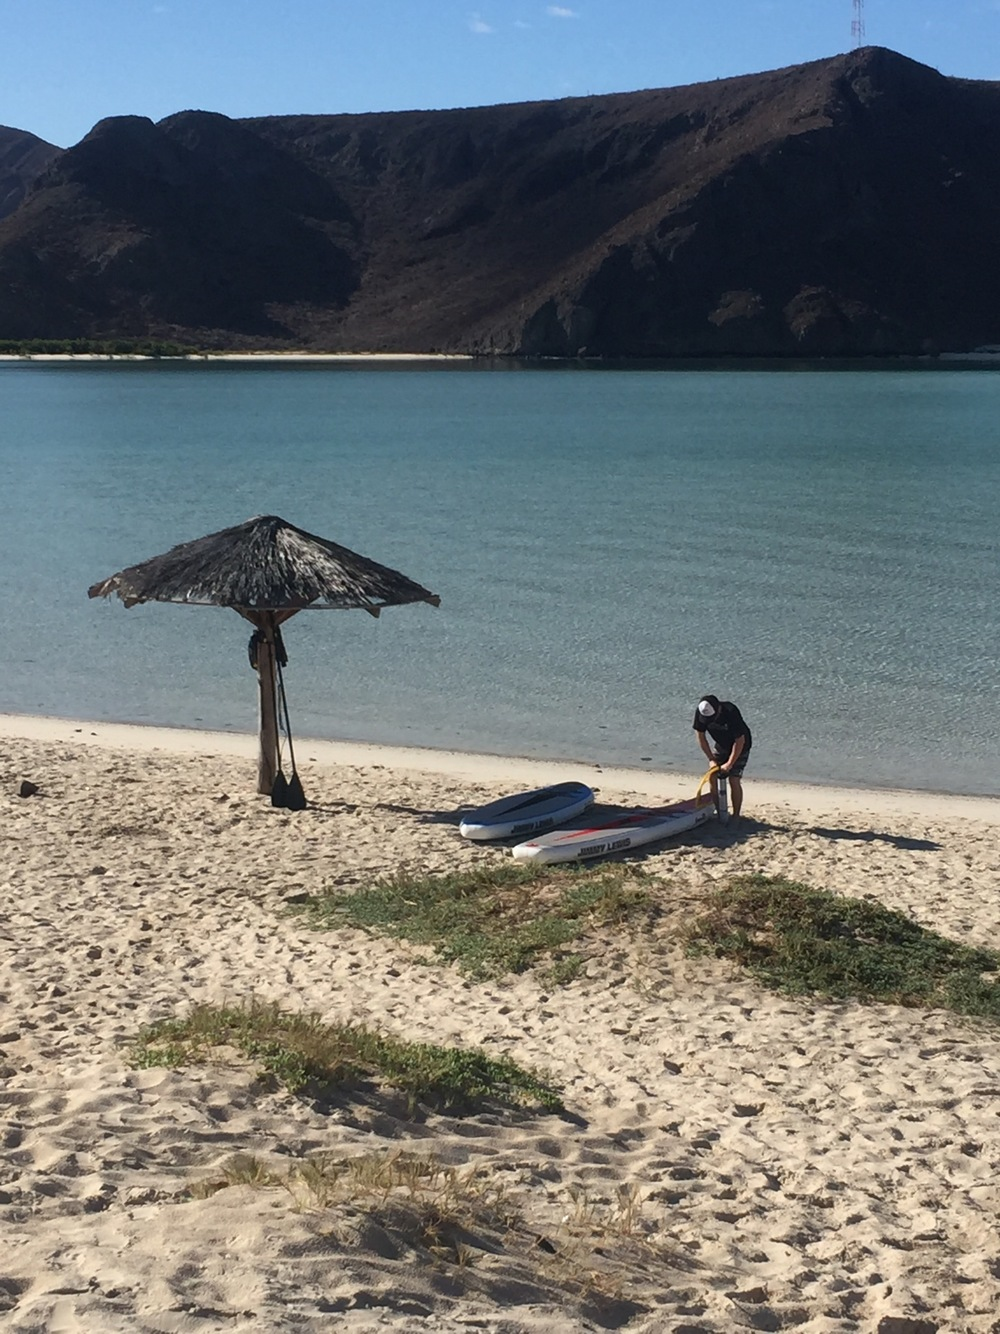 On another outing we used the shade of a random beach palapa while inflating the boards. In total it took less than 10 minutes to pump up both boards to around 15psi. The last few pounds of pressure take a bit of muscle, but once you get into a rhythm it's not bad.